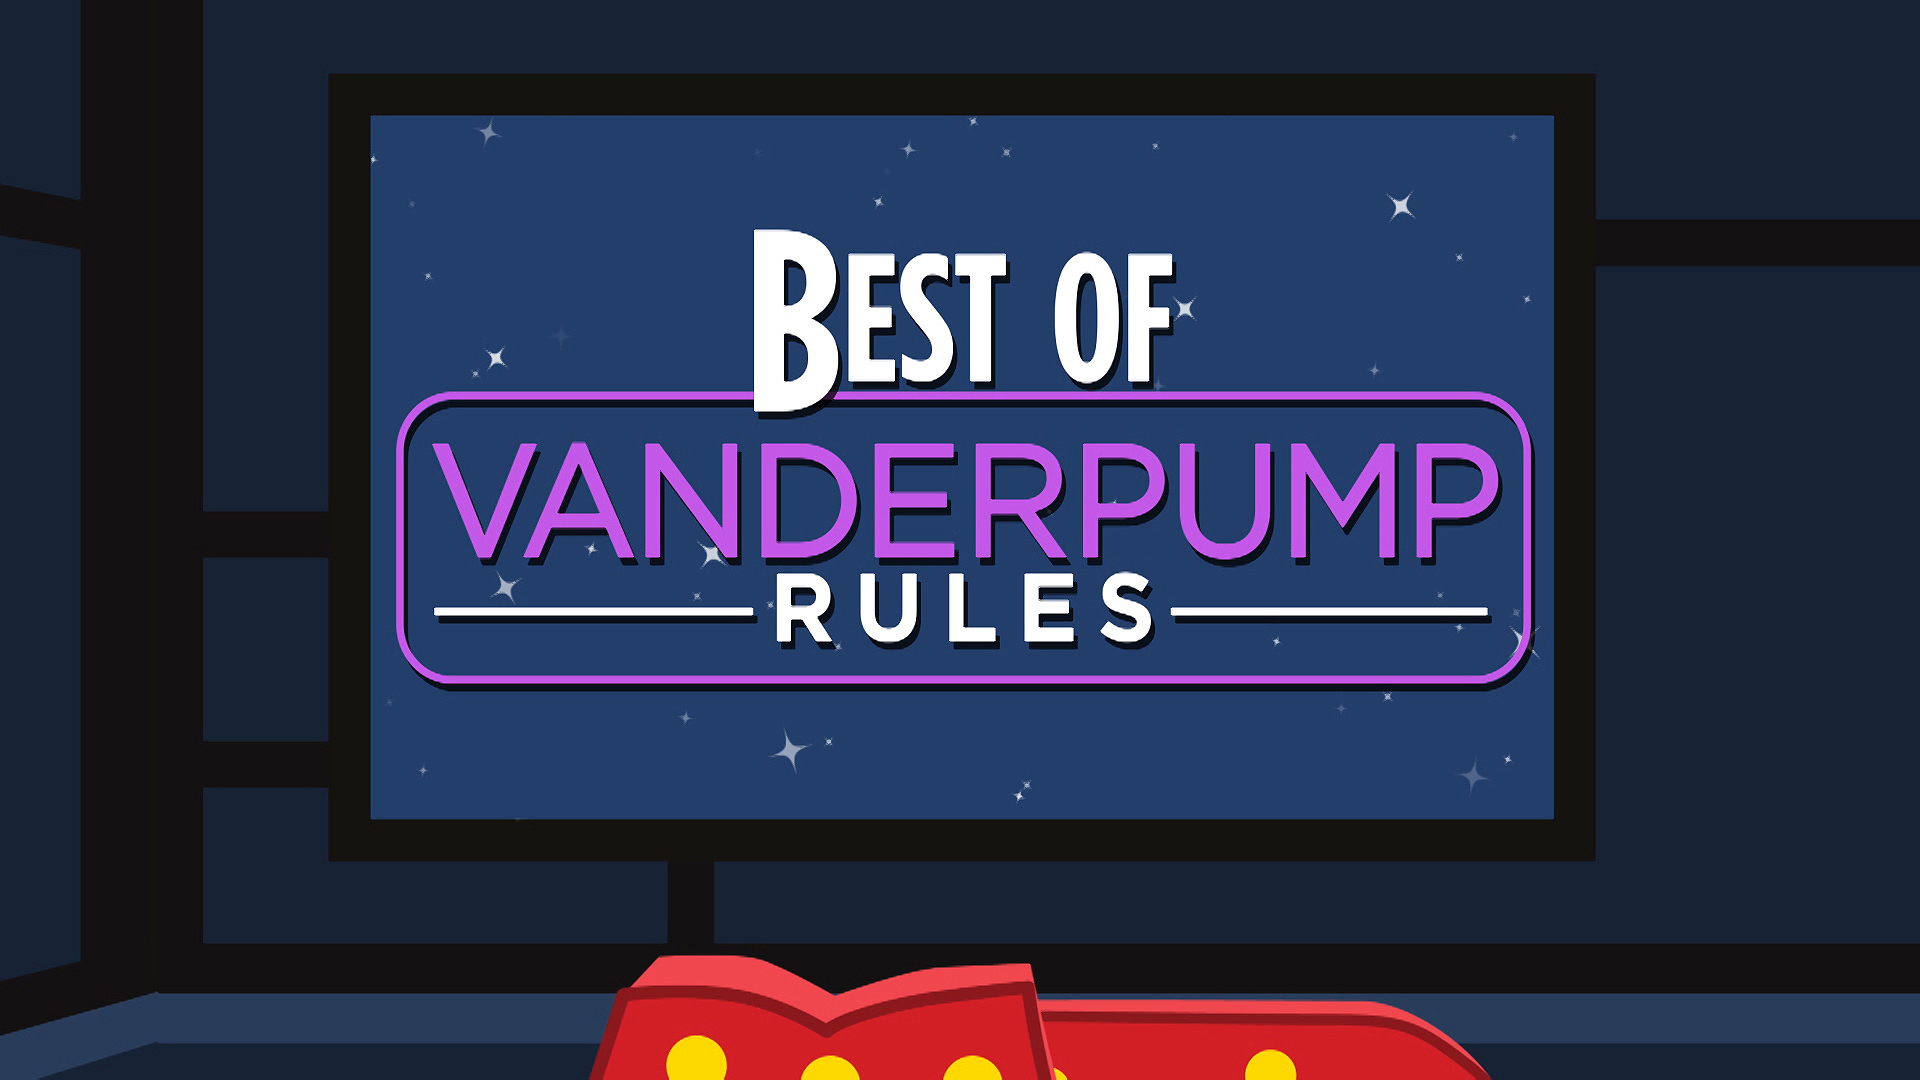 Best of Vanderpump Rules